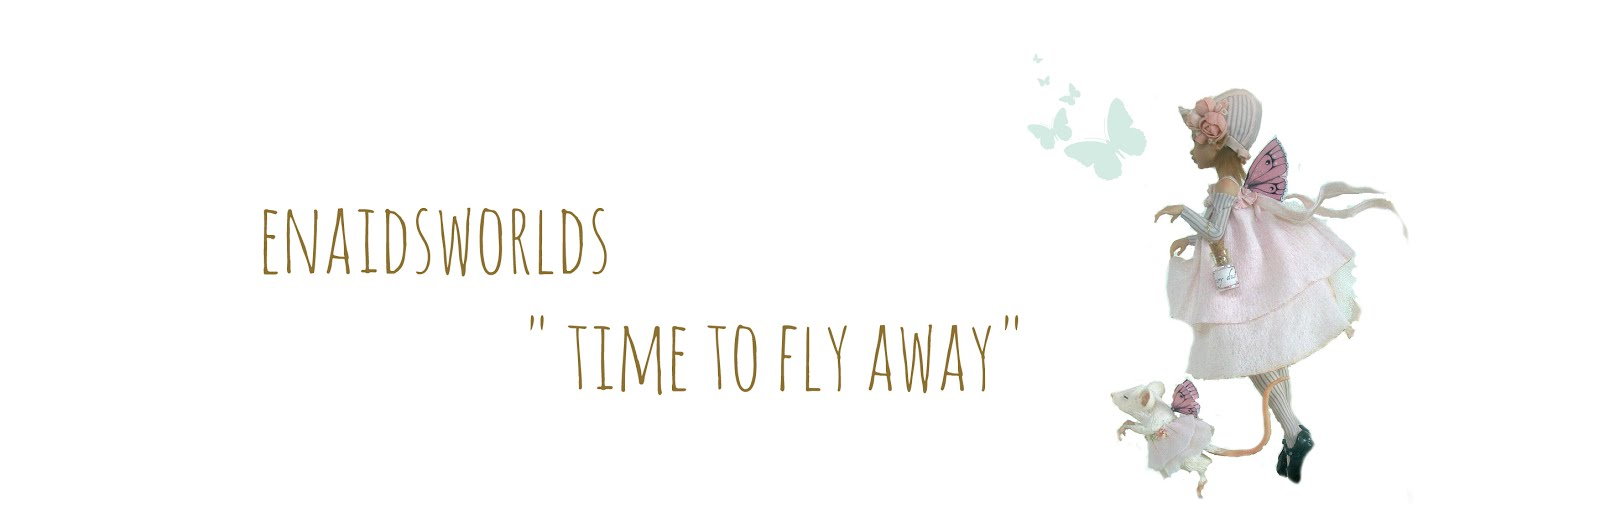 "enaidsworlds"" time to fly away"""